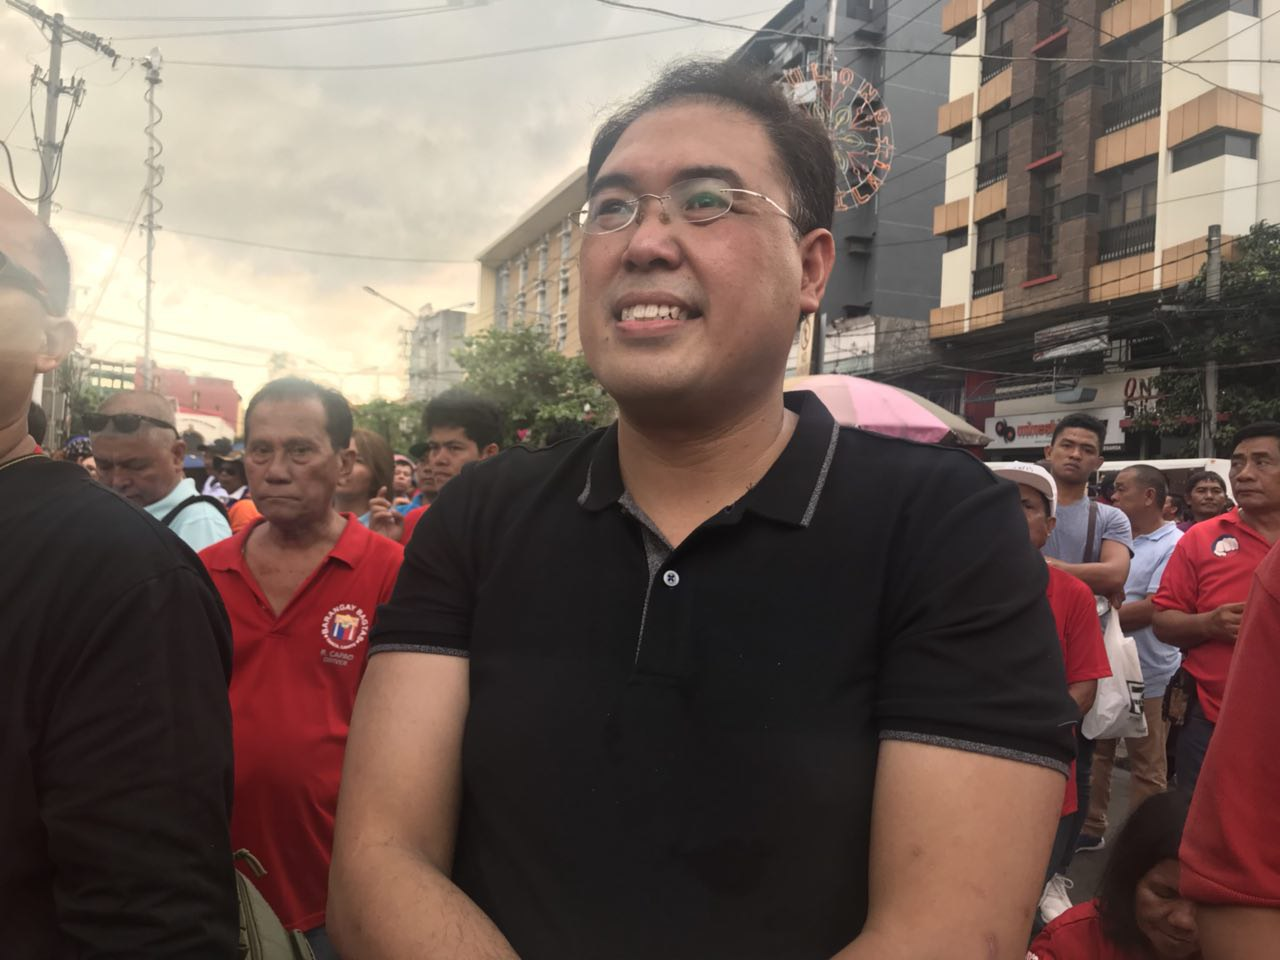 REVGOV. DILG Assistant Secretary Epimaco Densing III attends the rally in Mendiola on November 30 that calls for the declaration of a revolutionary government in transition to federalism. Photo by Rambo Talabong/Rappler